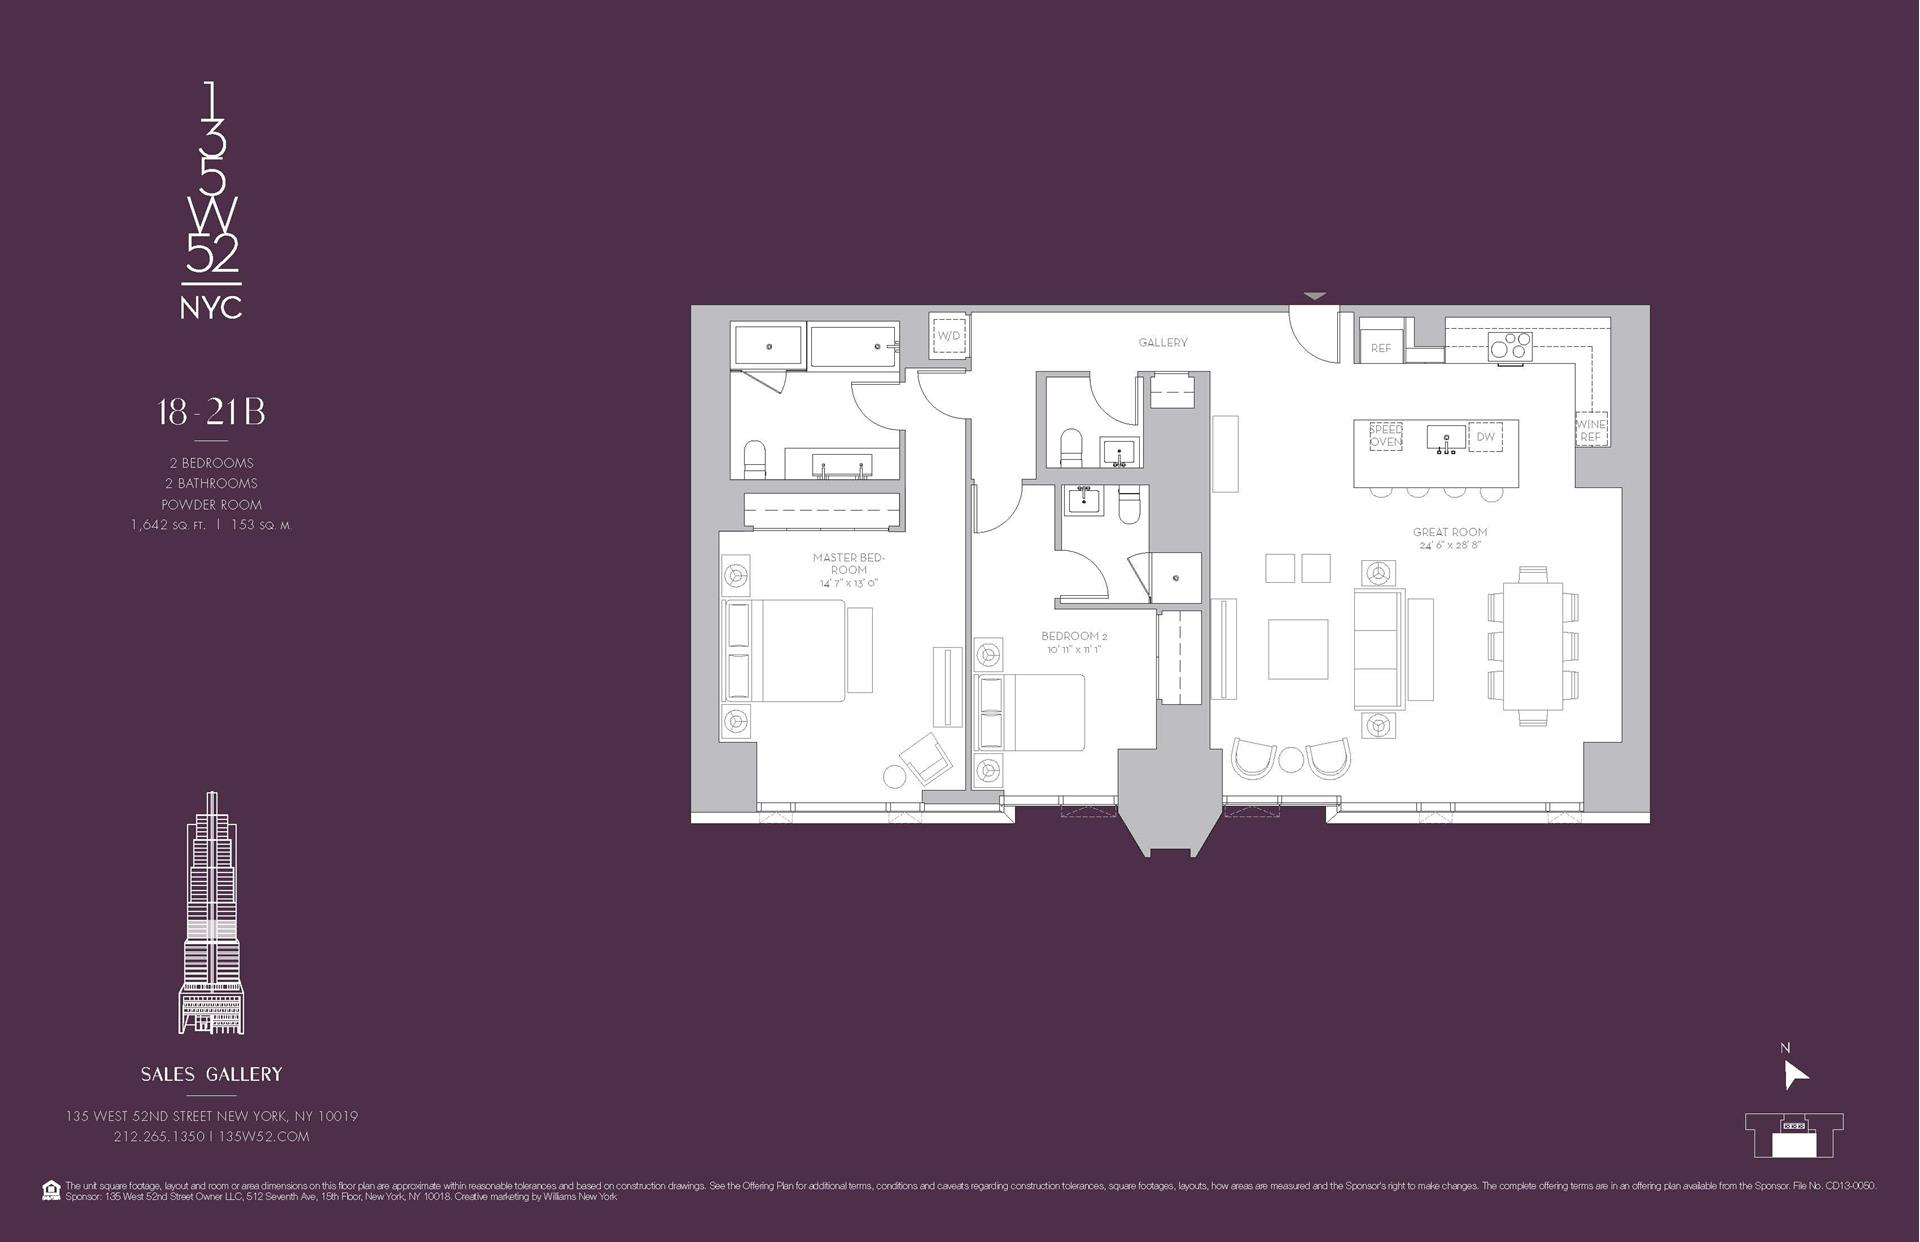 Floor plan of 135 West 52nd St, 20B - Midtown, New York